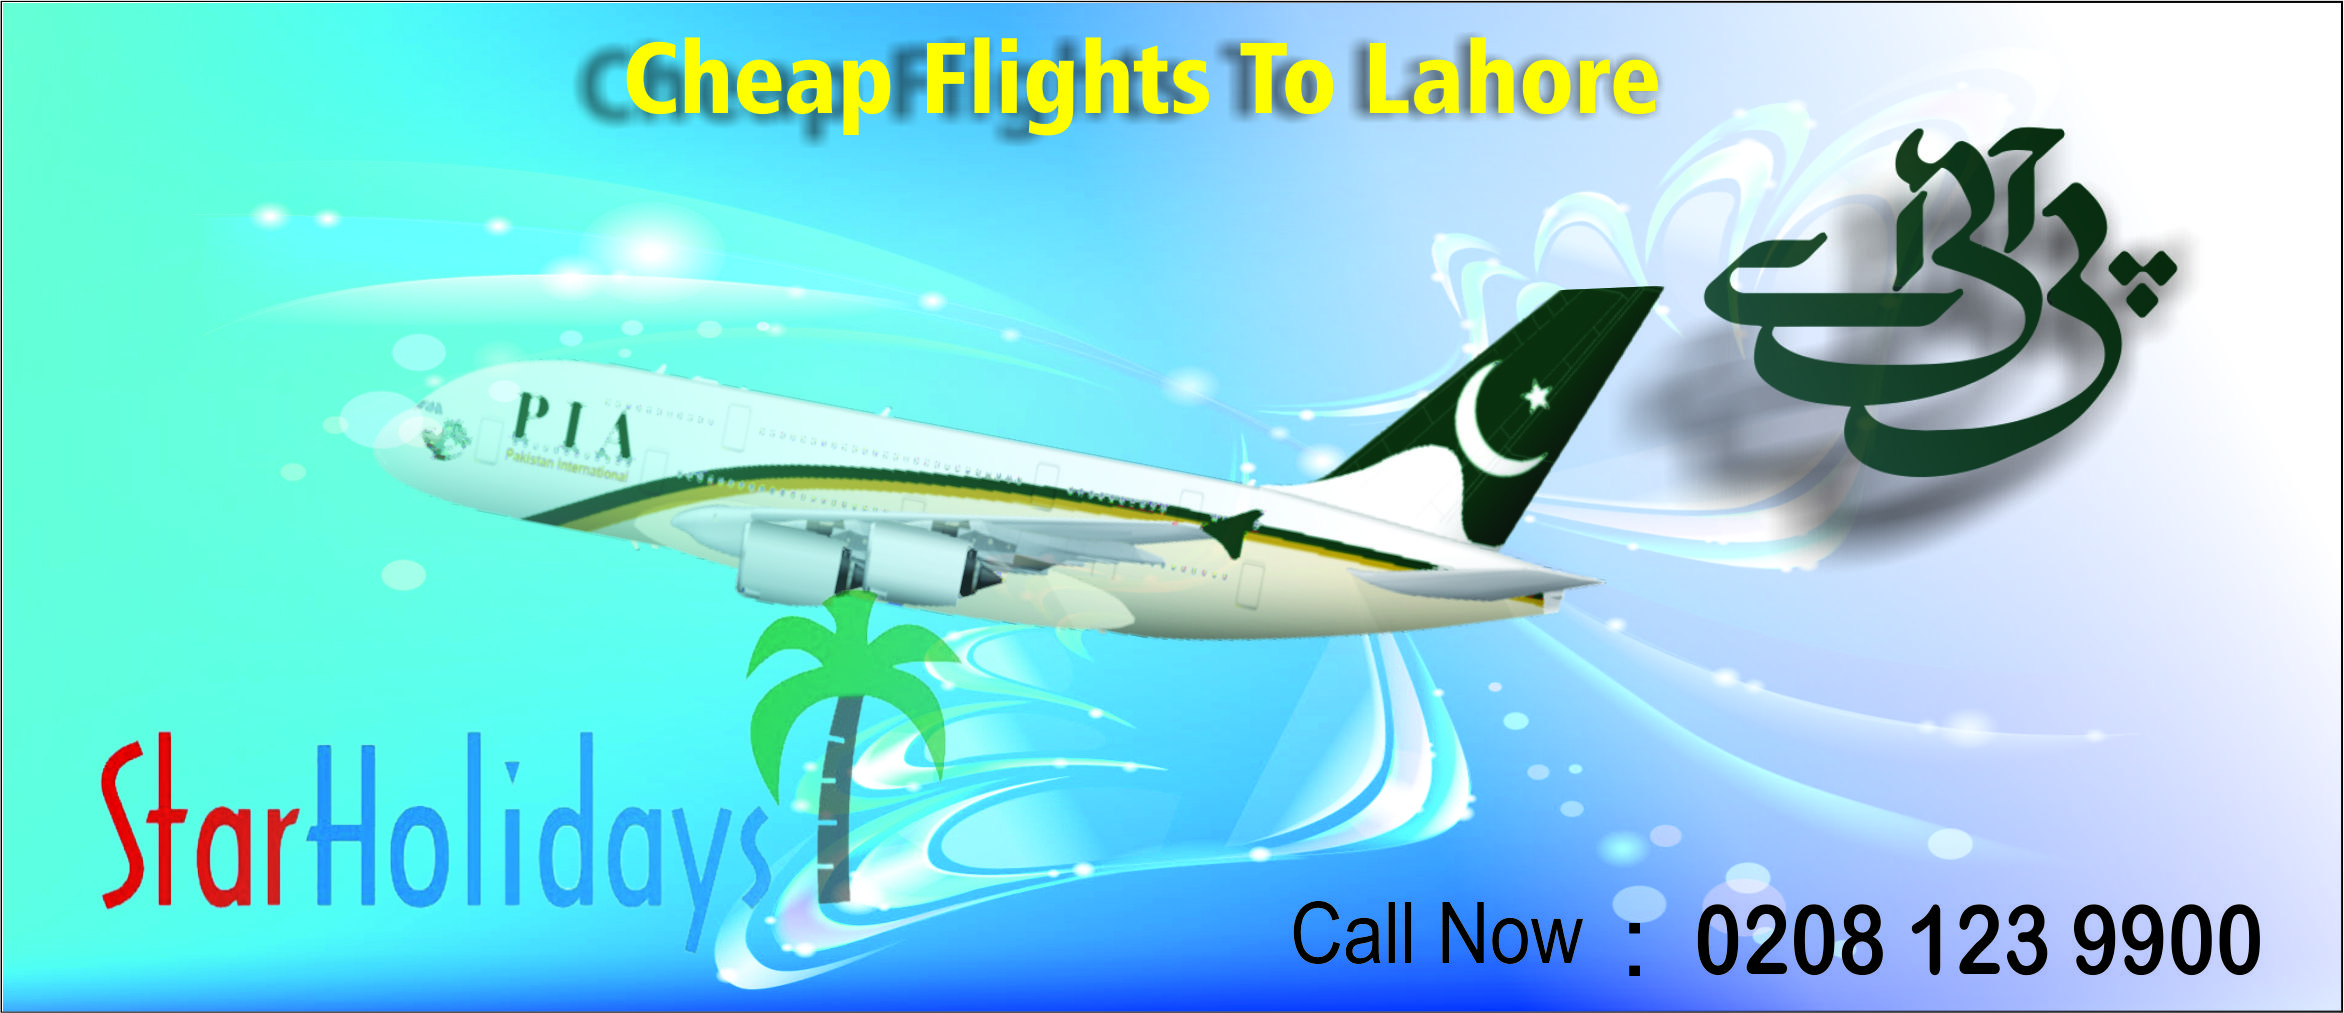 Cheap PIA Flights to Lahore